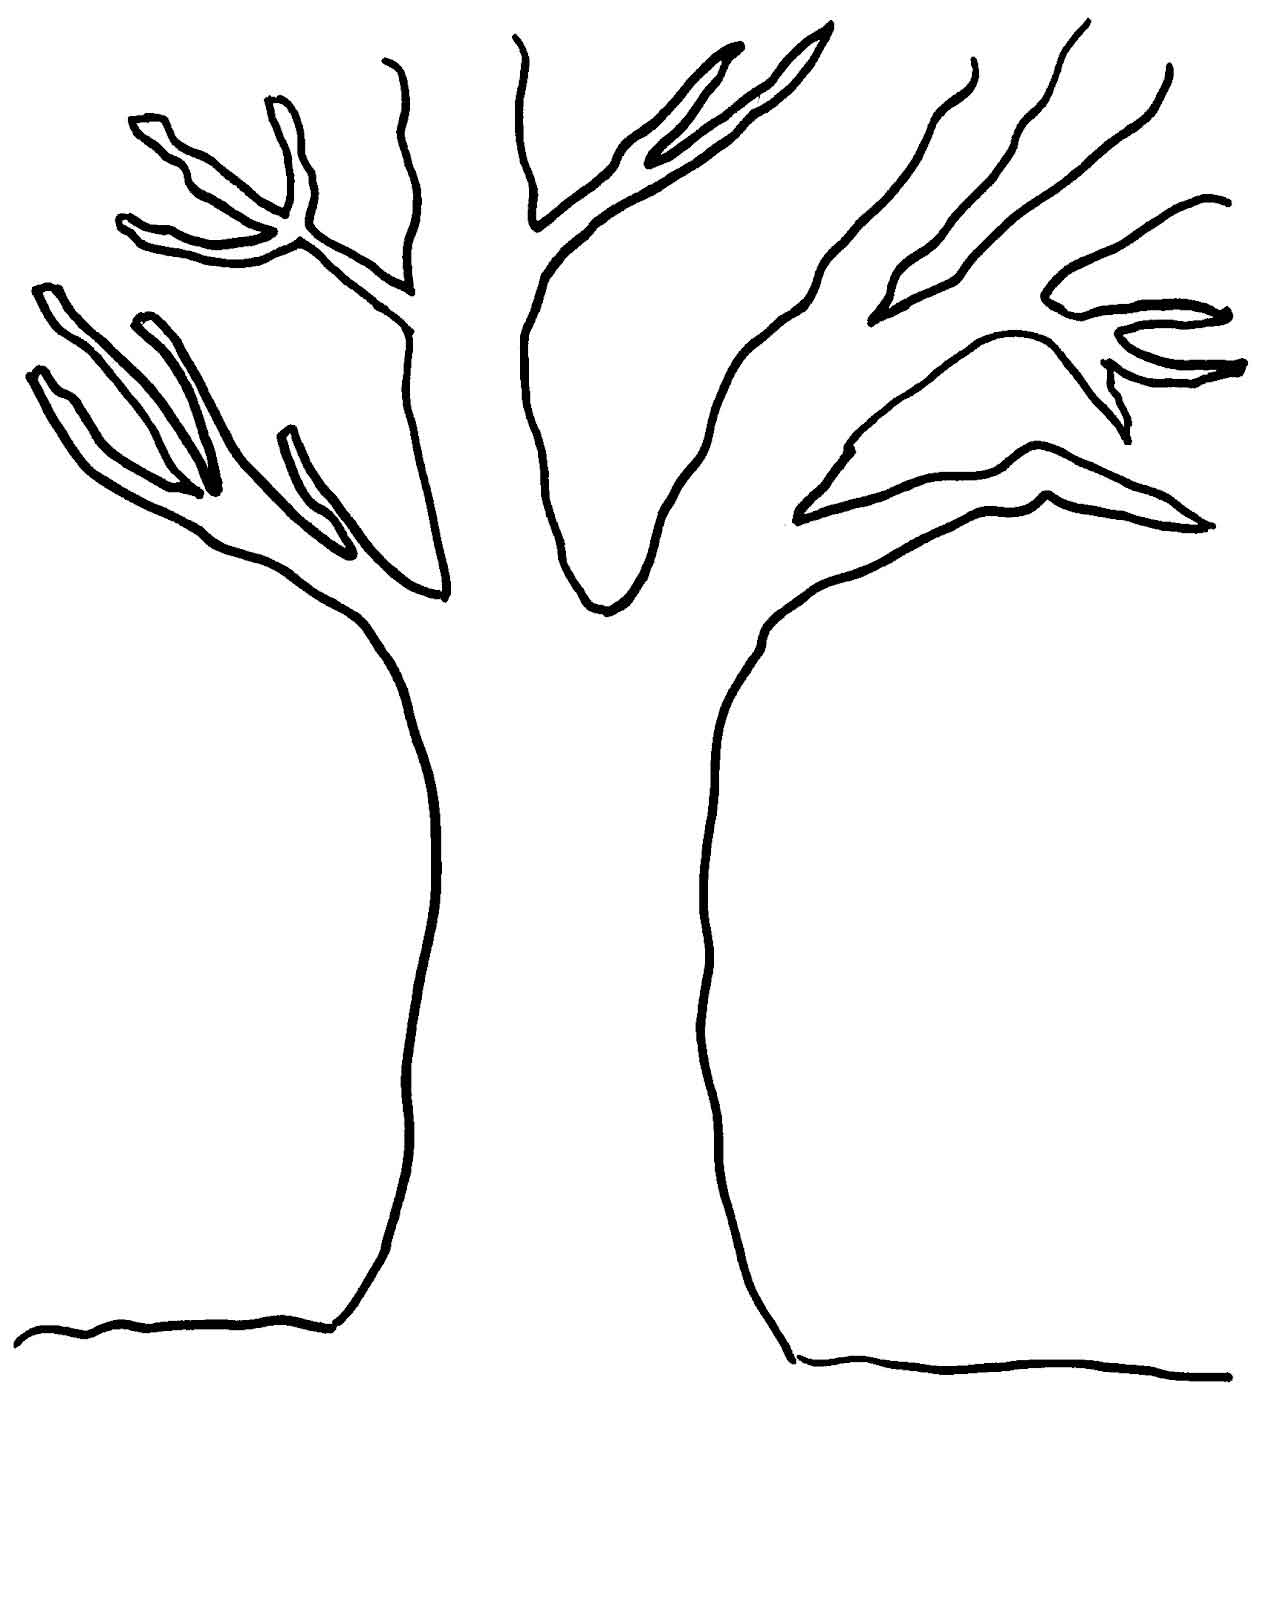 leaf coloring pages images bible - photo#15